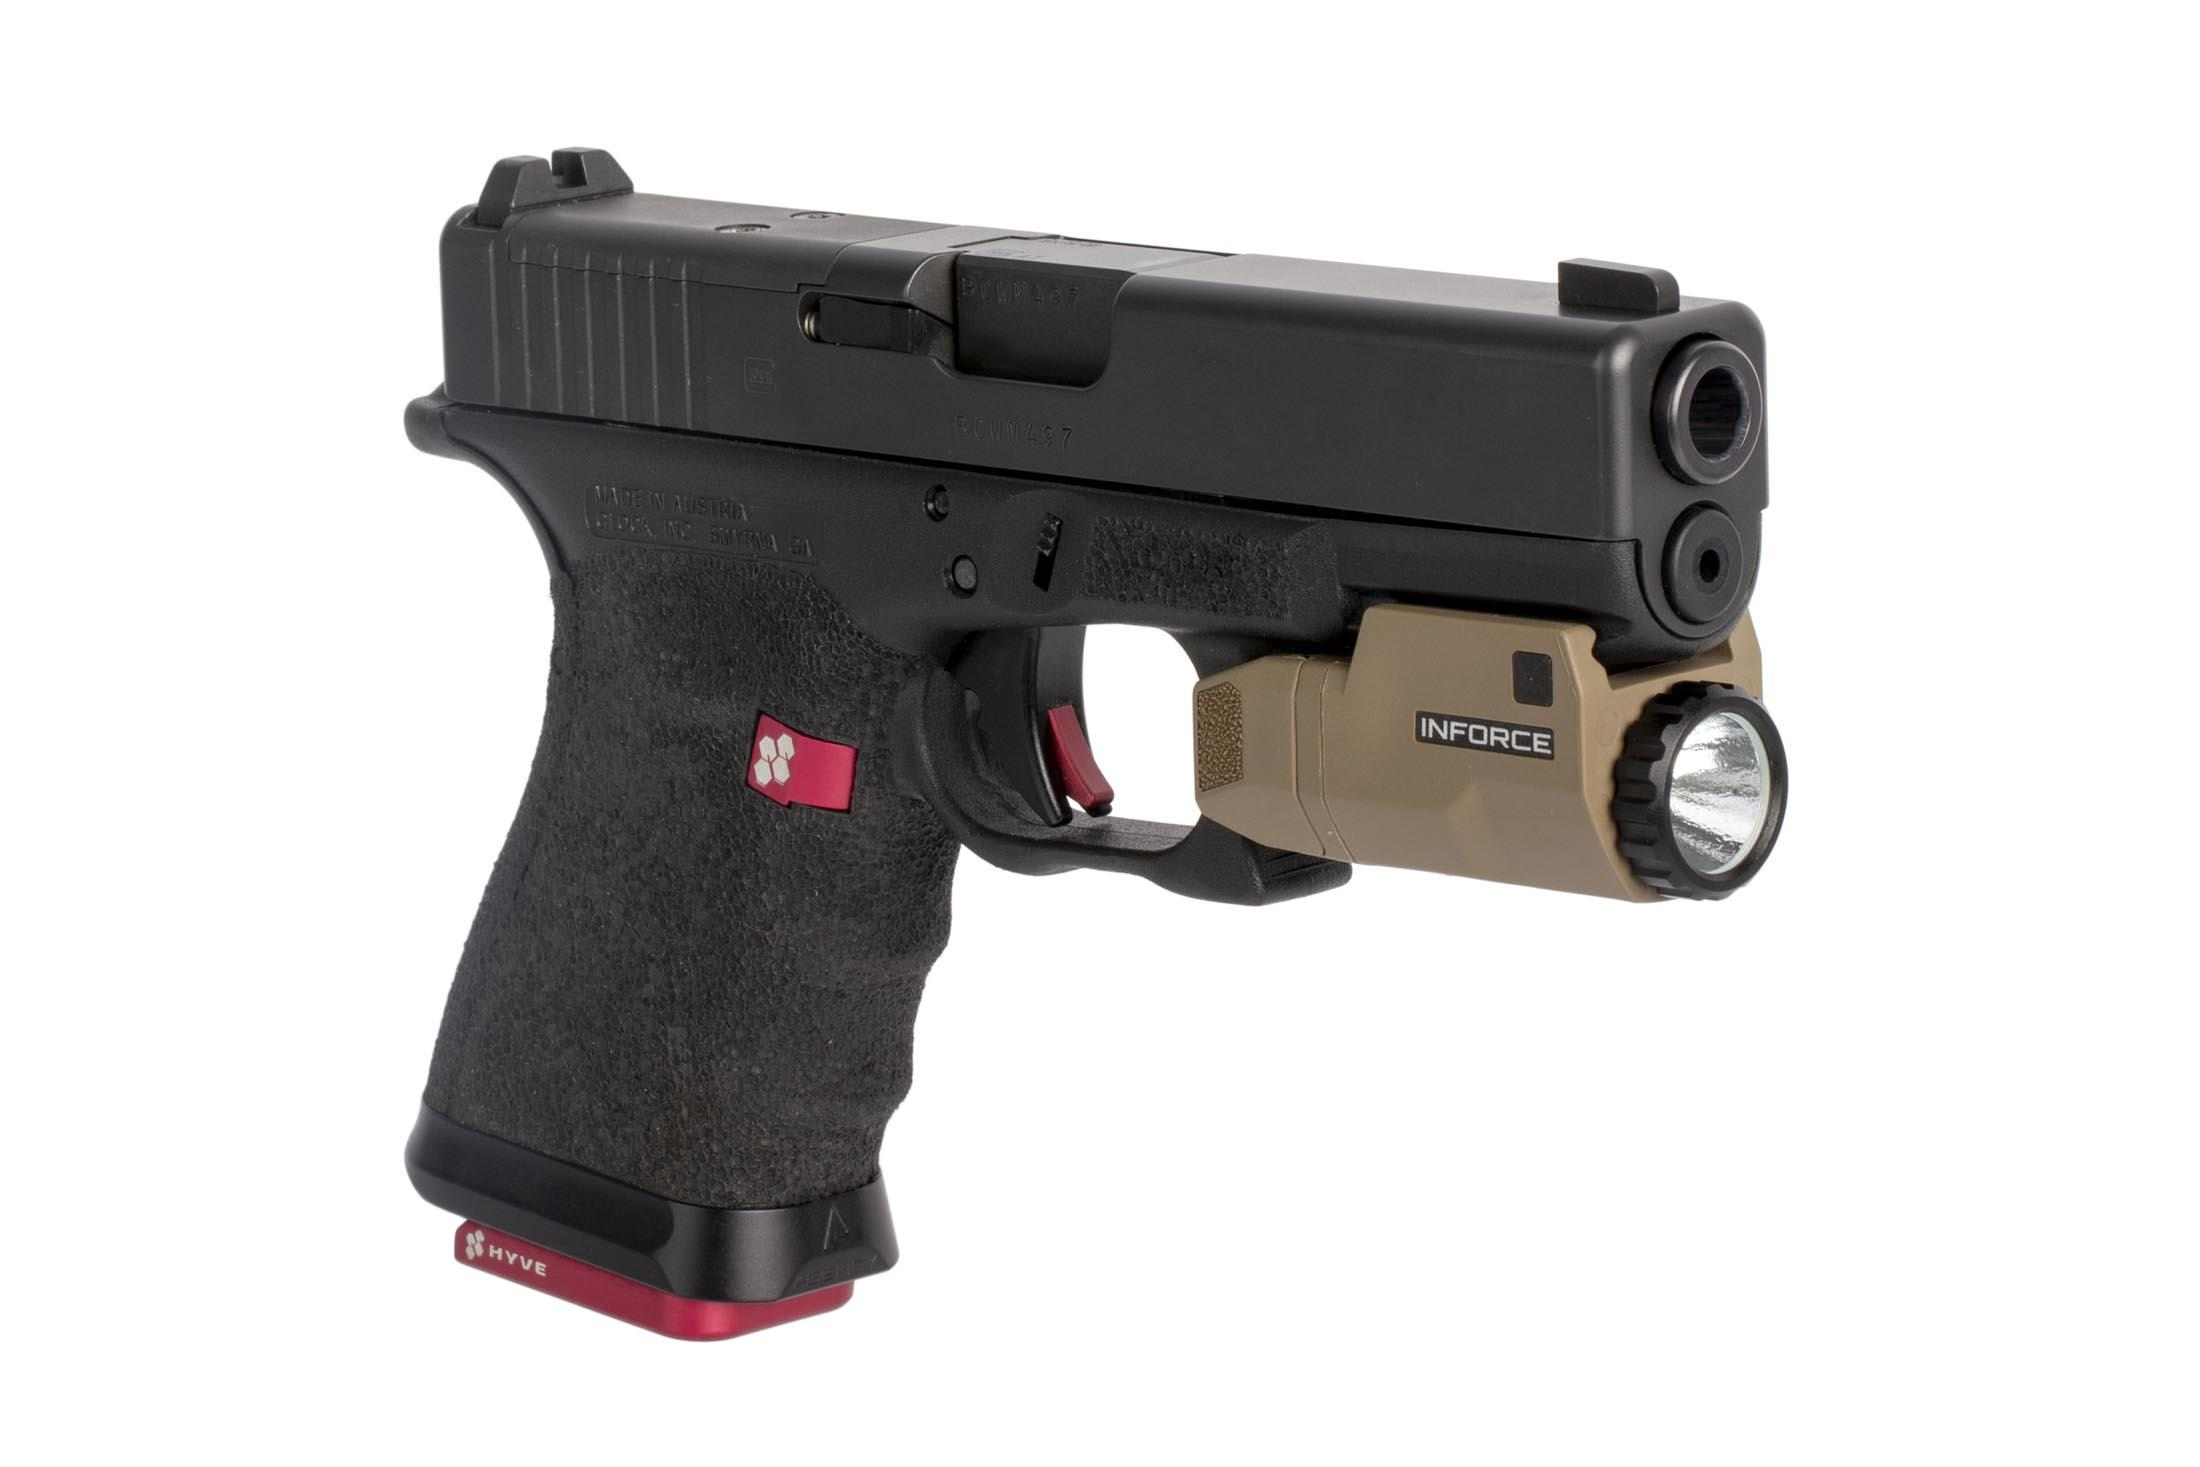 Inforce APLc 200 Lumen FDE weapon light is compatible with all railed Glock handguns including compact models